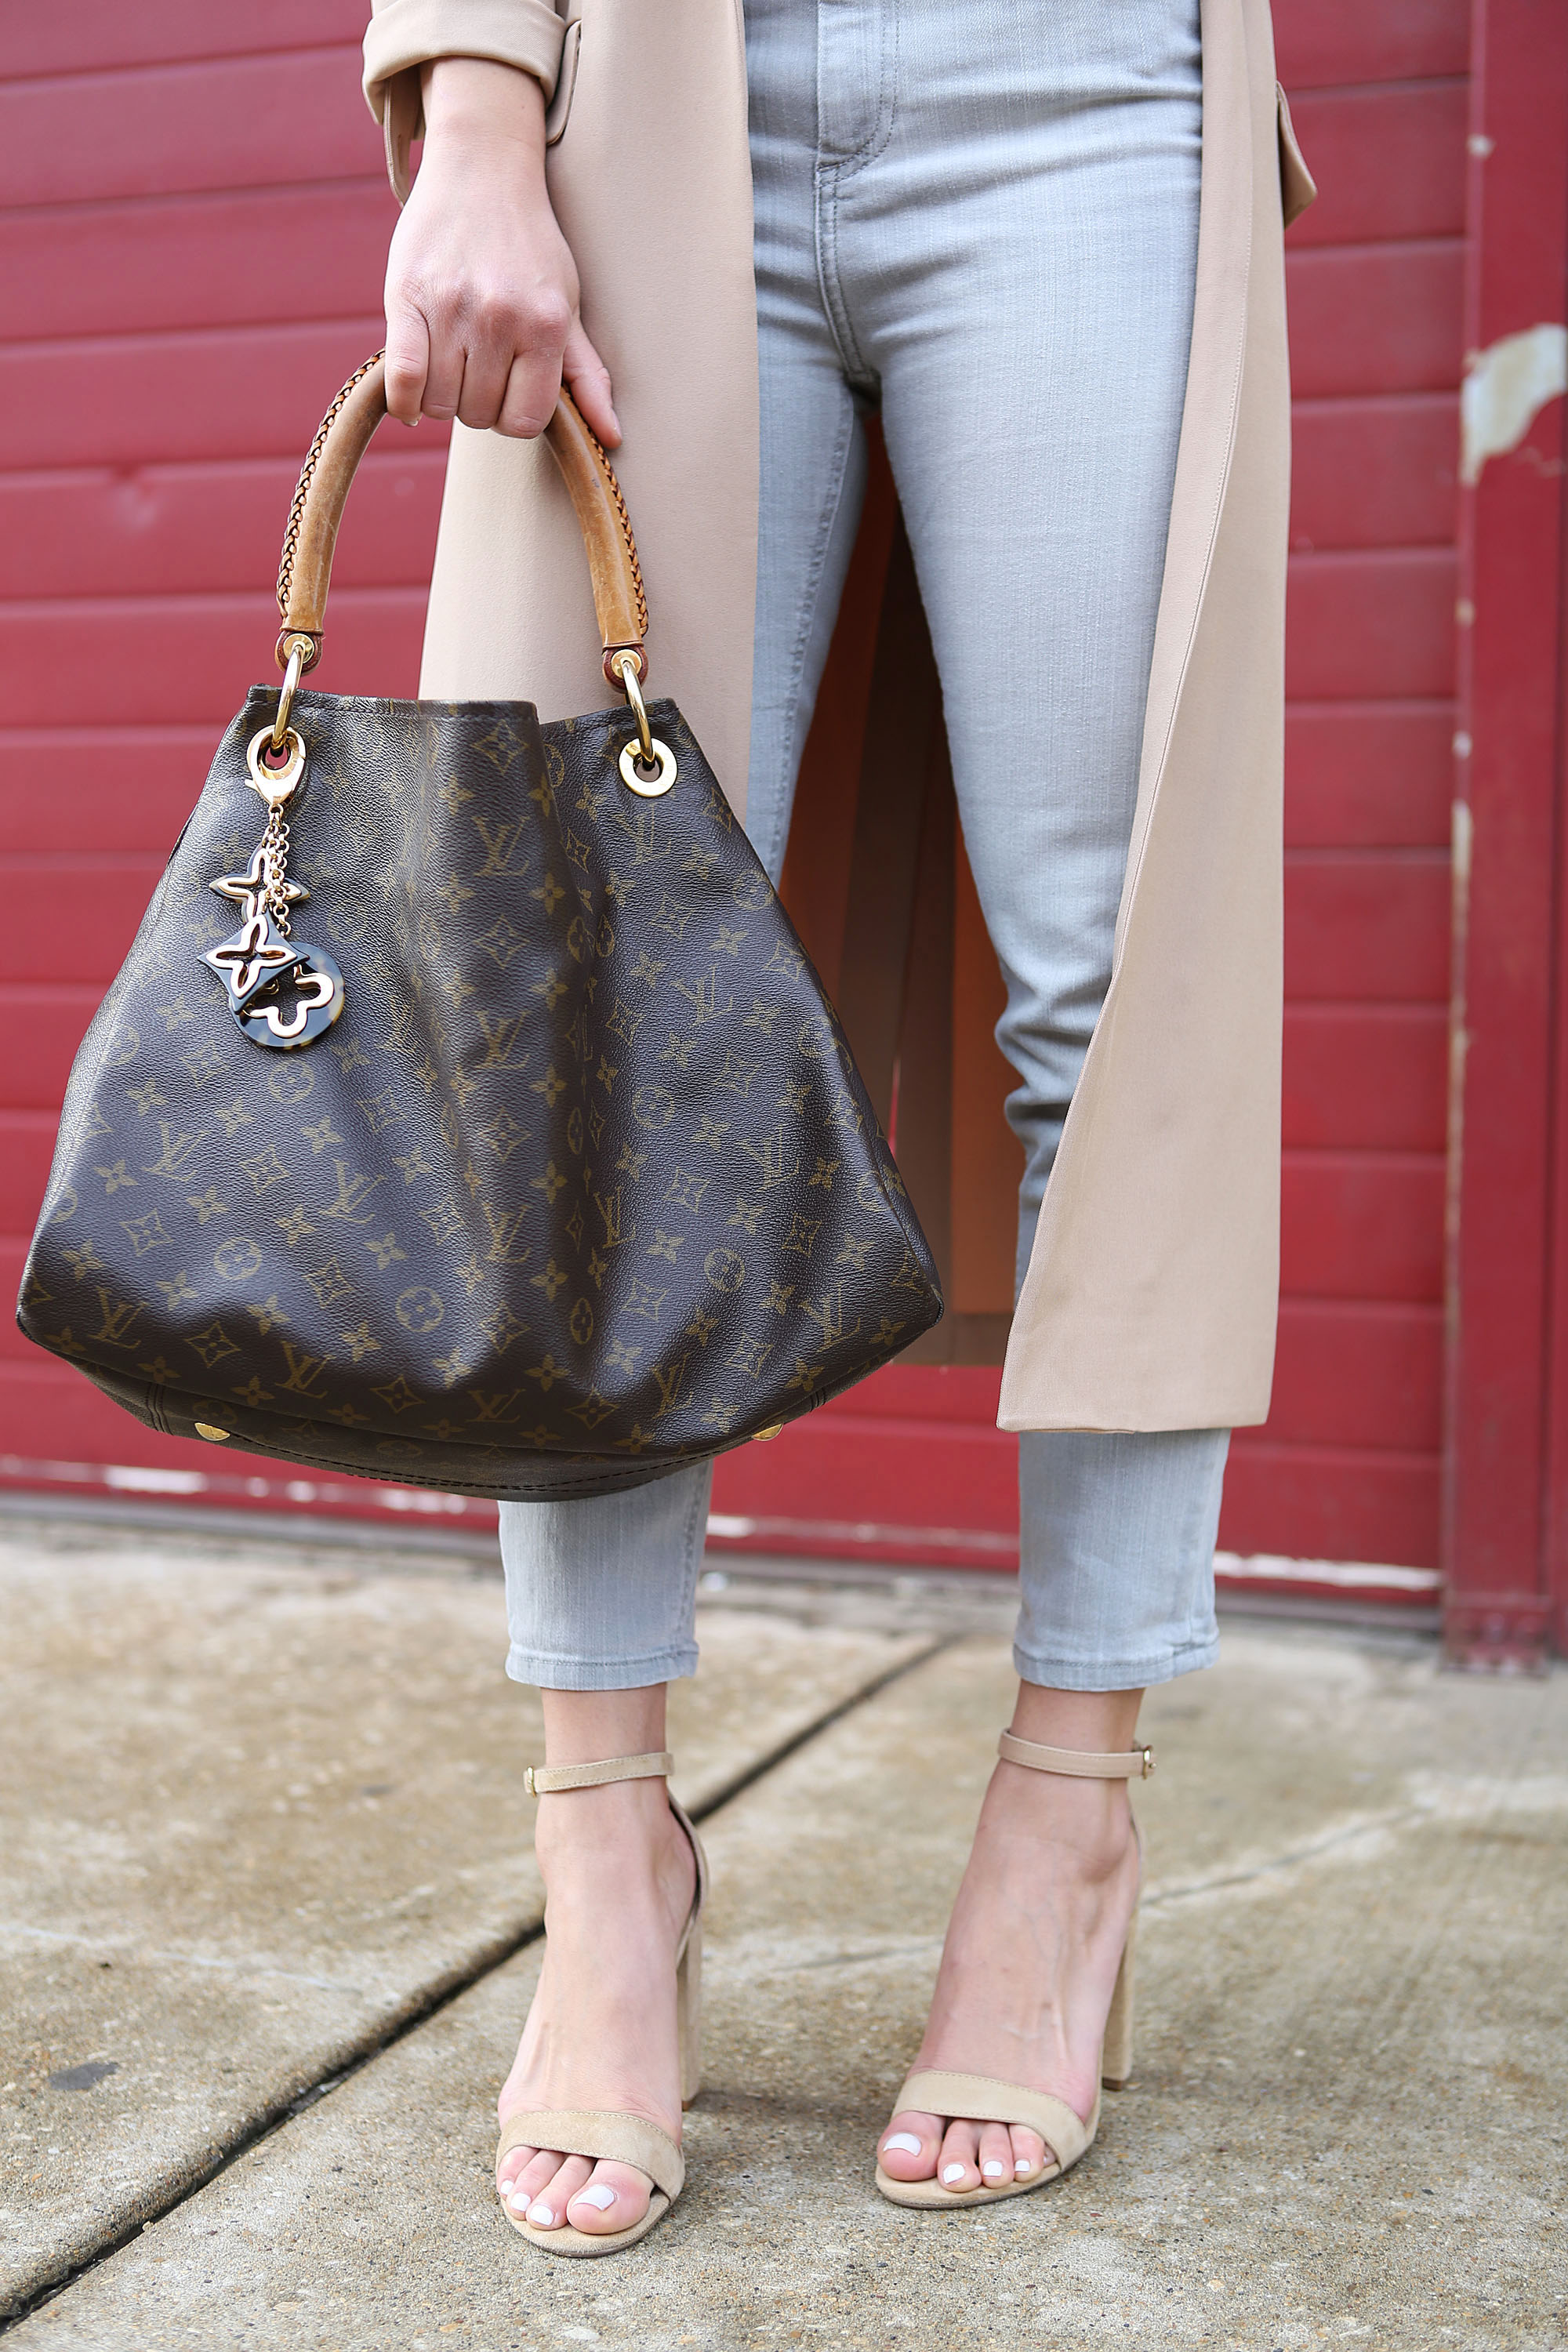 louis-vuitton-bag-steve-madden-heels